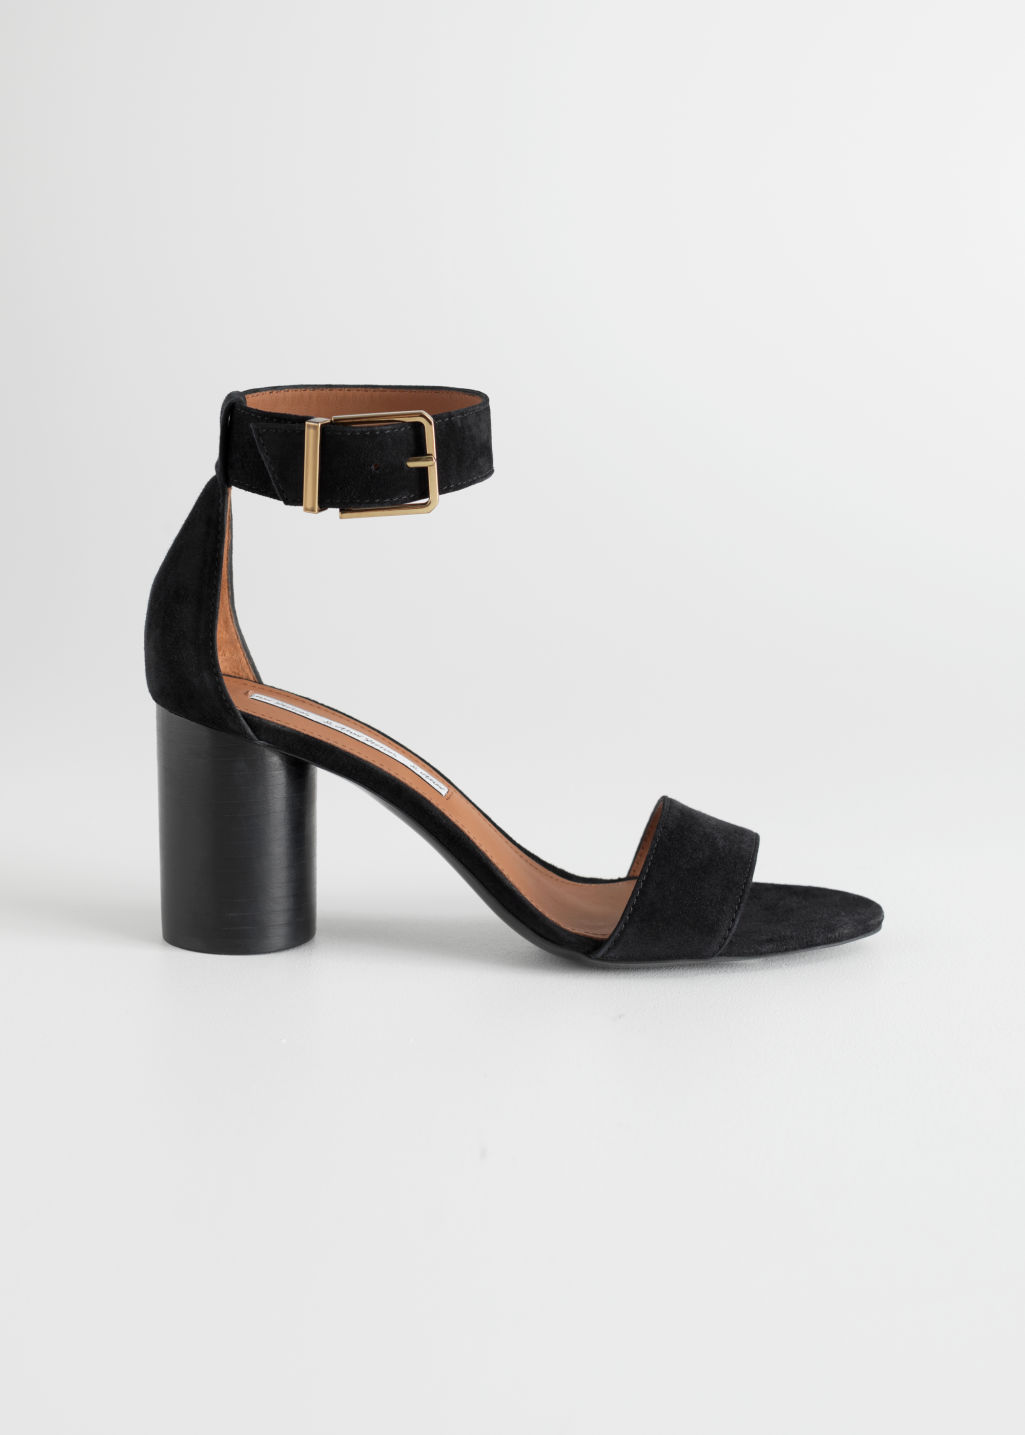 & OTHER STORIES Square Buckle Heeled Sandals fduIe